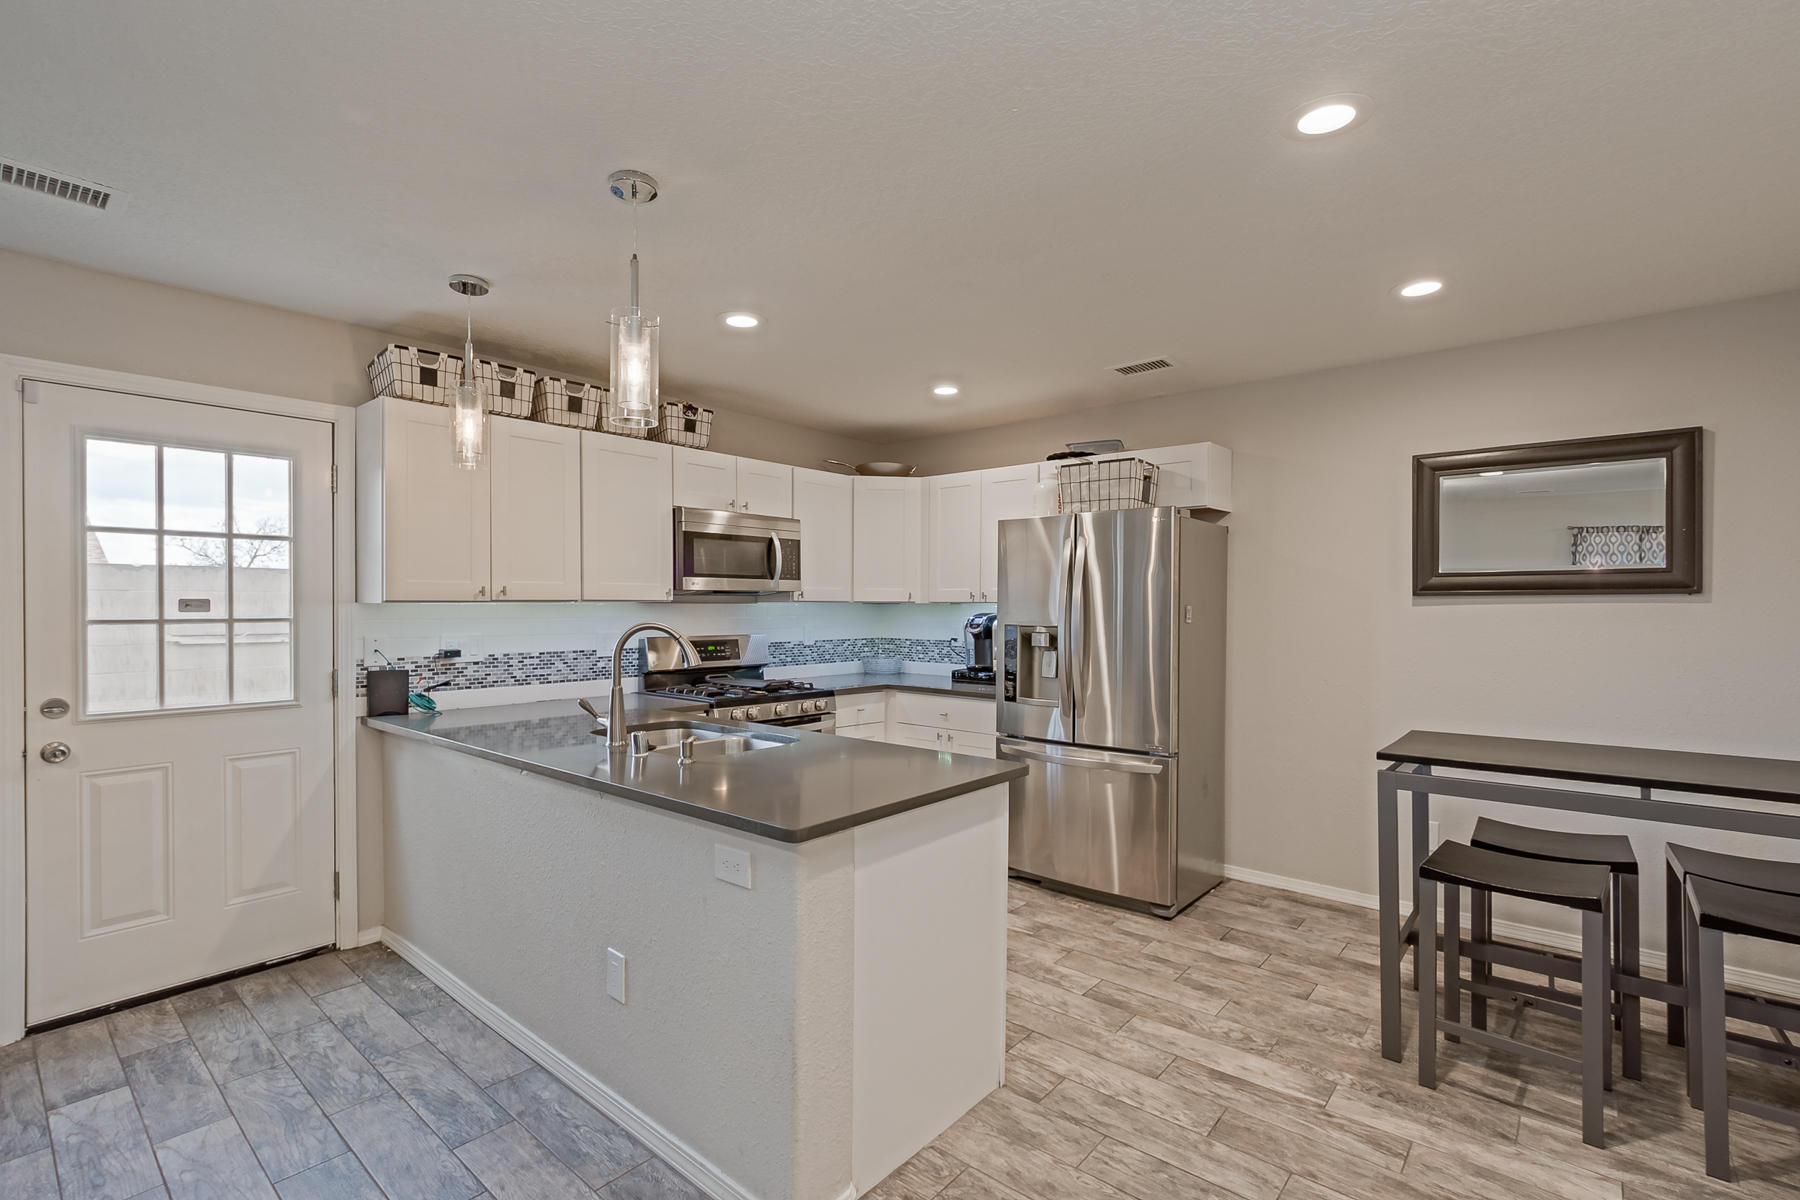 3 BR, 3 Bathrooms, 2 car garage! All appliances convey! Solar Panels convey!  Backyard flower planters & fountain convey!  Newly installed closet shelving! BEAUTIFUL tile flooring! Low-Maintenance backyard! Picture perfect cabinets & granite counter-tops! Remodeled bathroom!